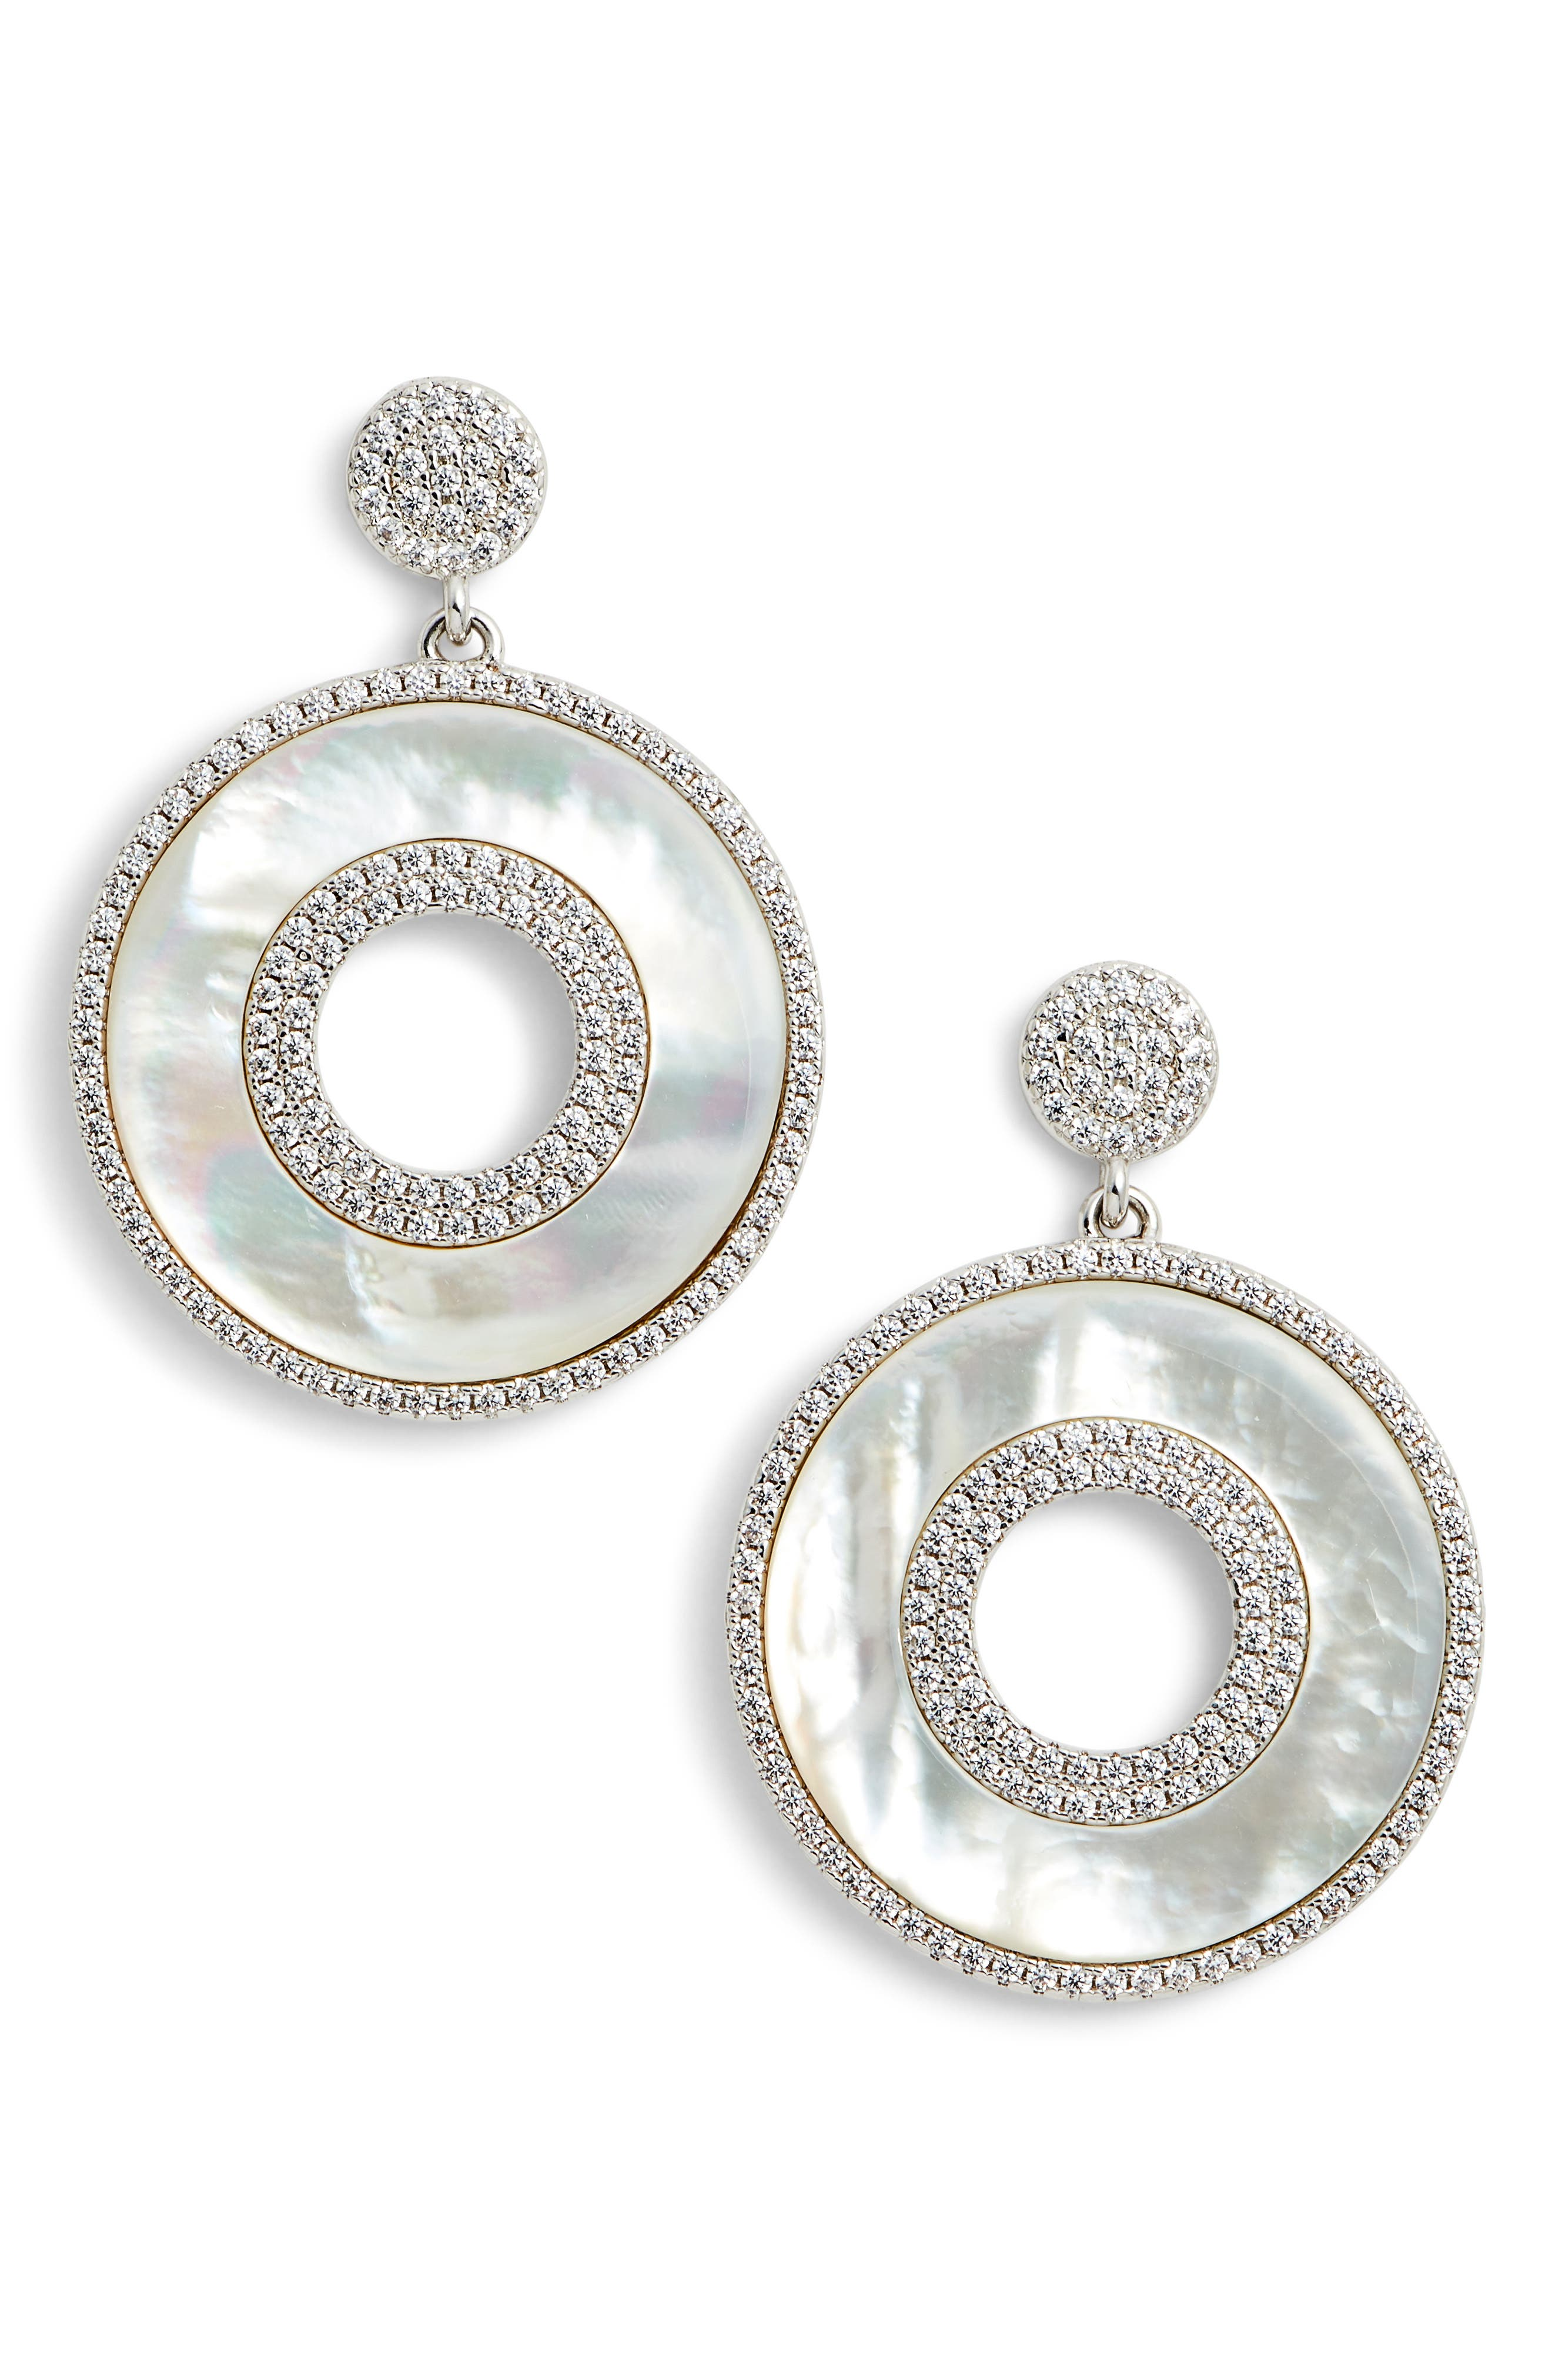 Mother of Pearl Drop Earrings,                             Main thumbnail 1, color,                             Mother Of Pearl/ Silver